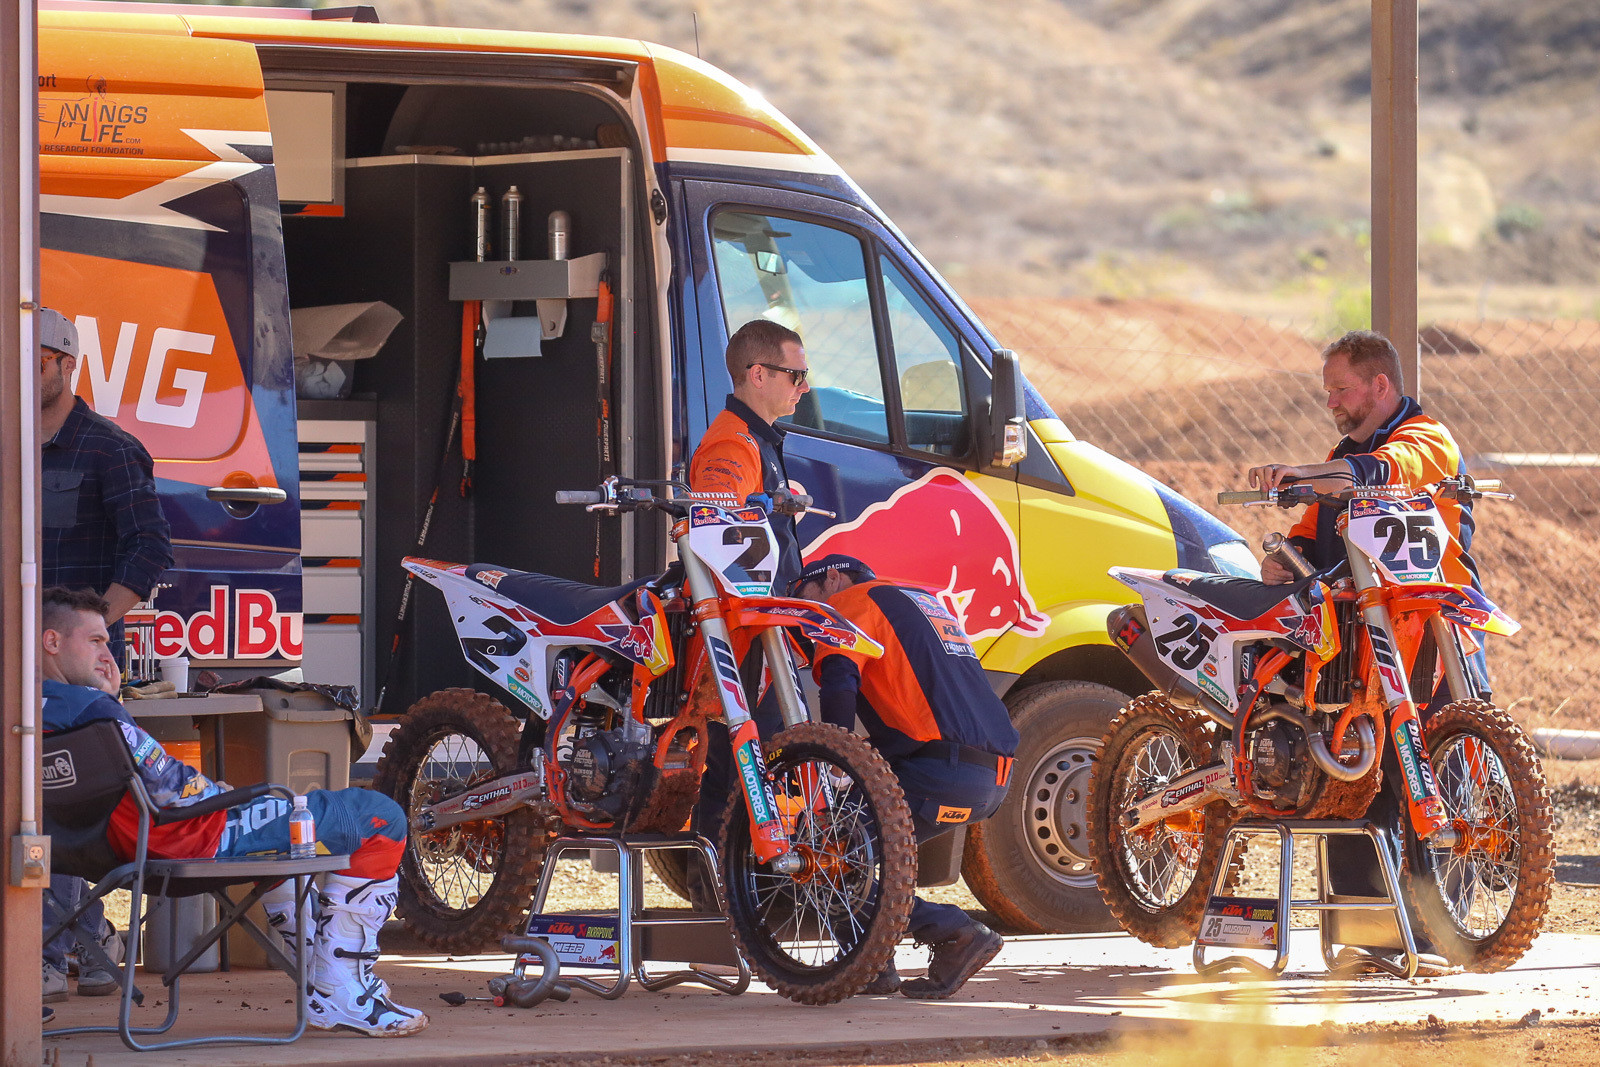 It's good to see the Red Bull KTM back at full strength. Only having one rider under the tent for much of the year was a bummer for the orange crew.